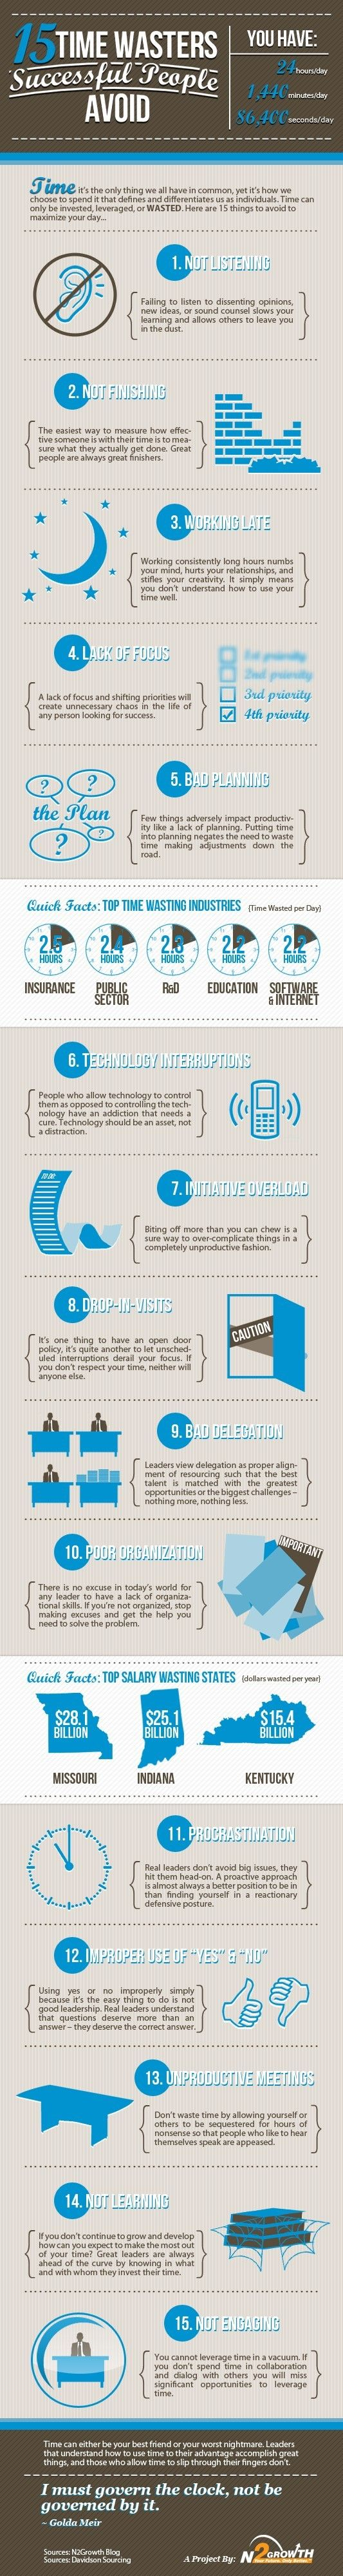 15+ Time Waster you should Avoid to Become Successful | All Infographics